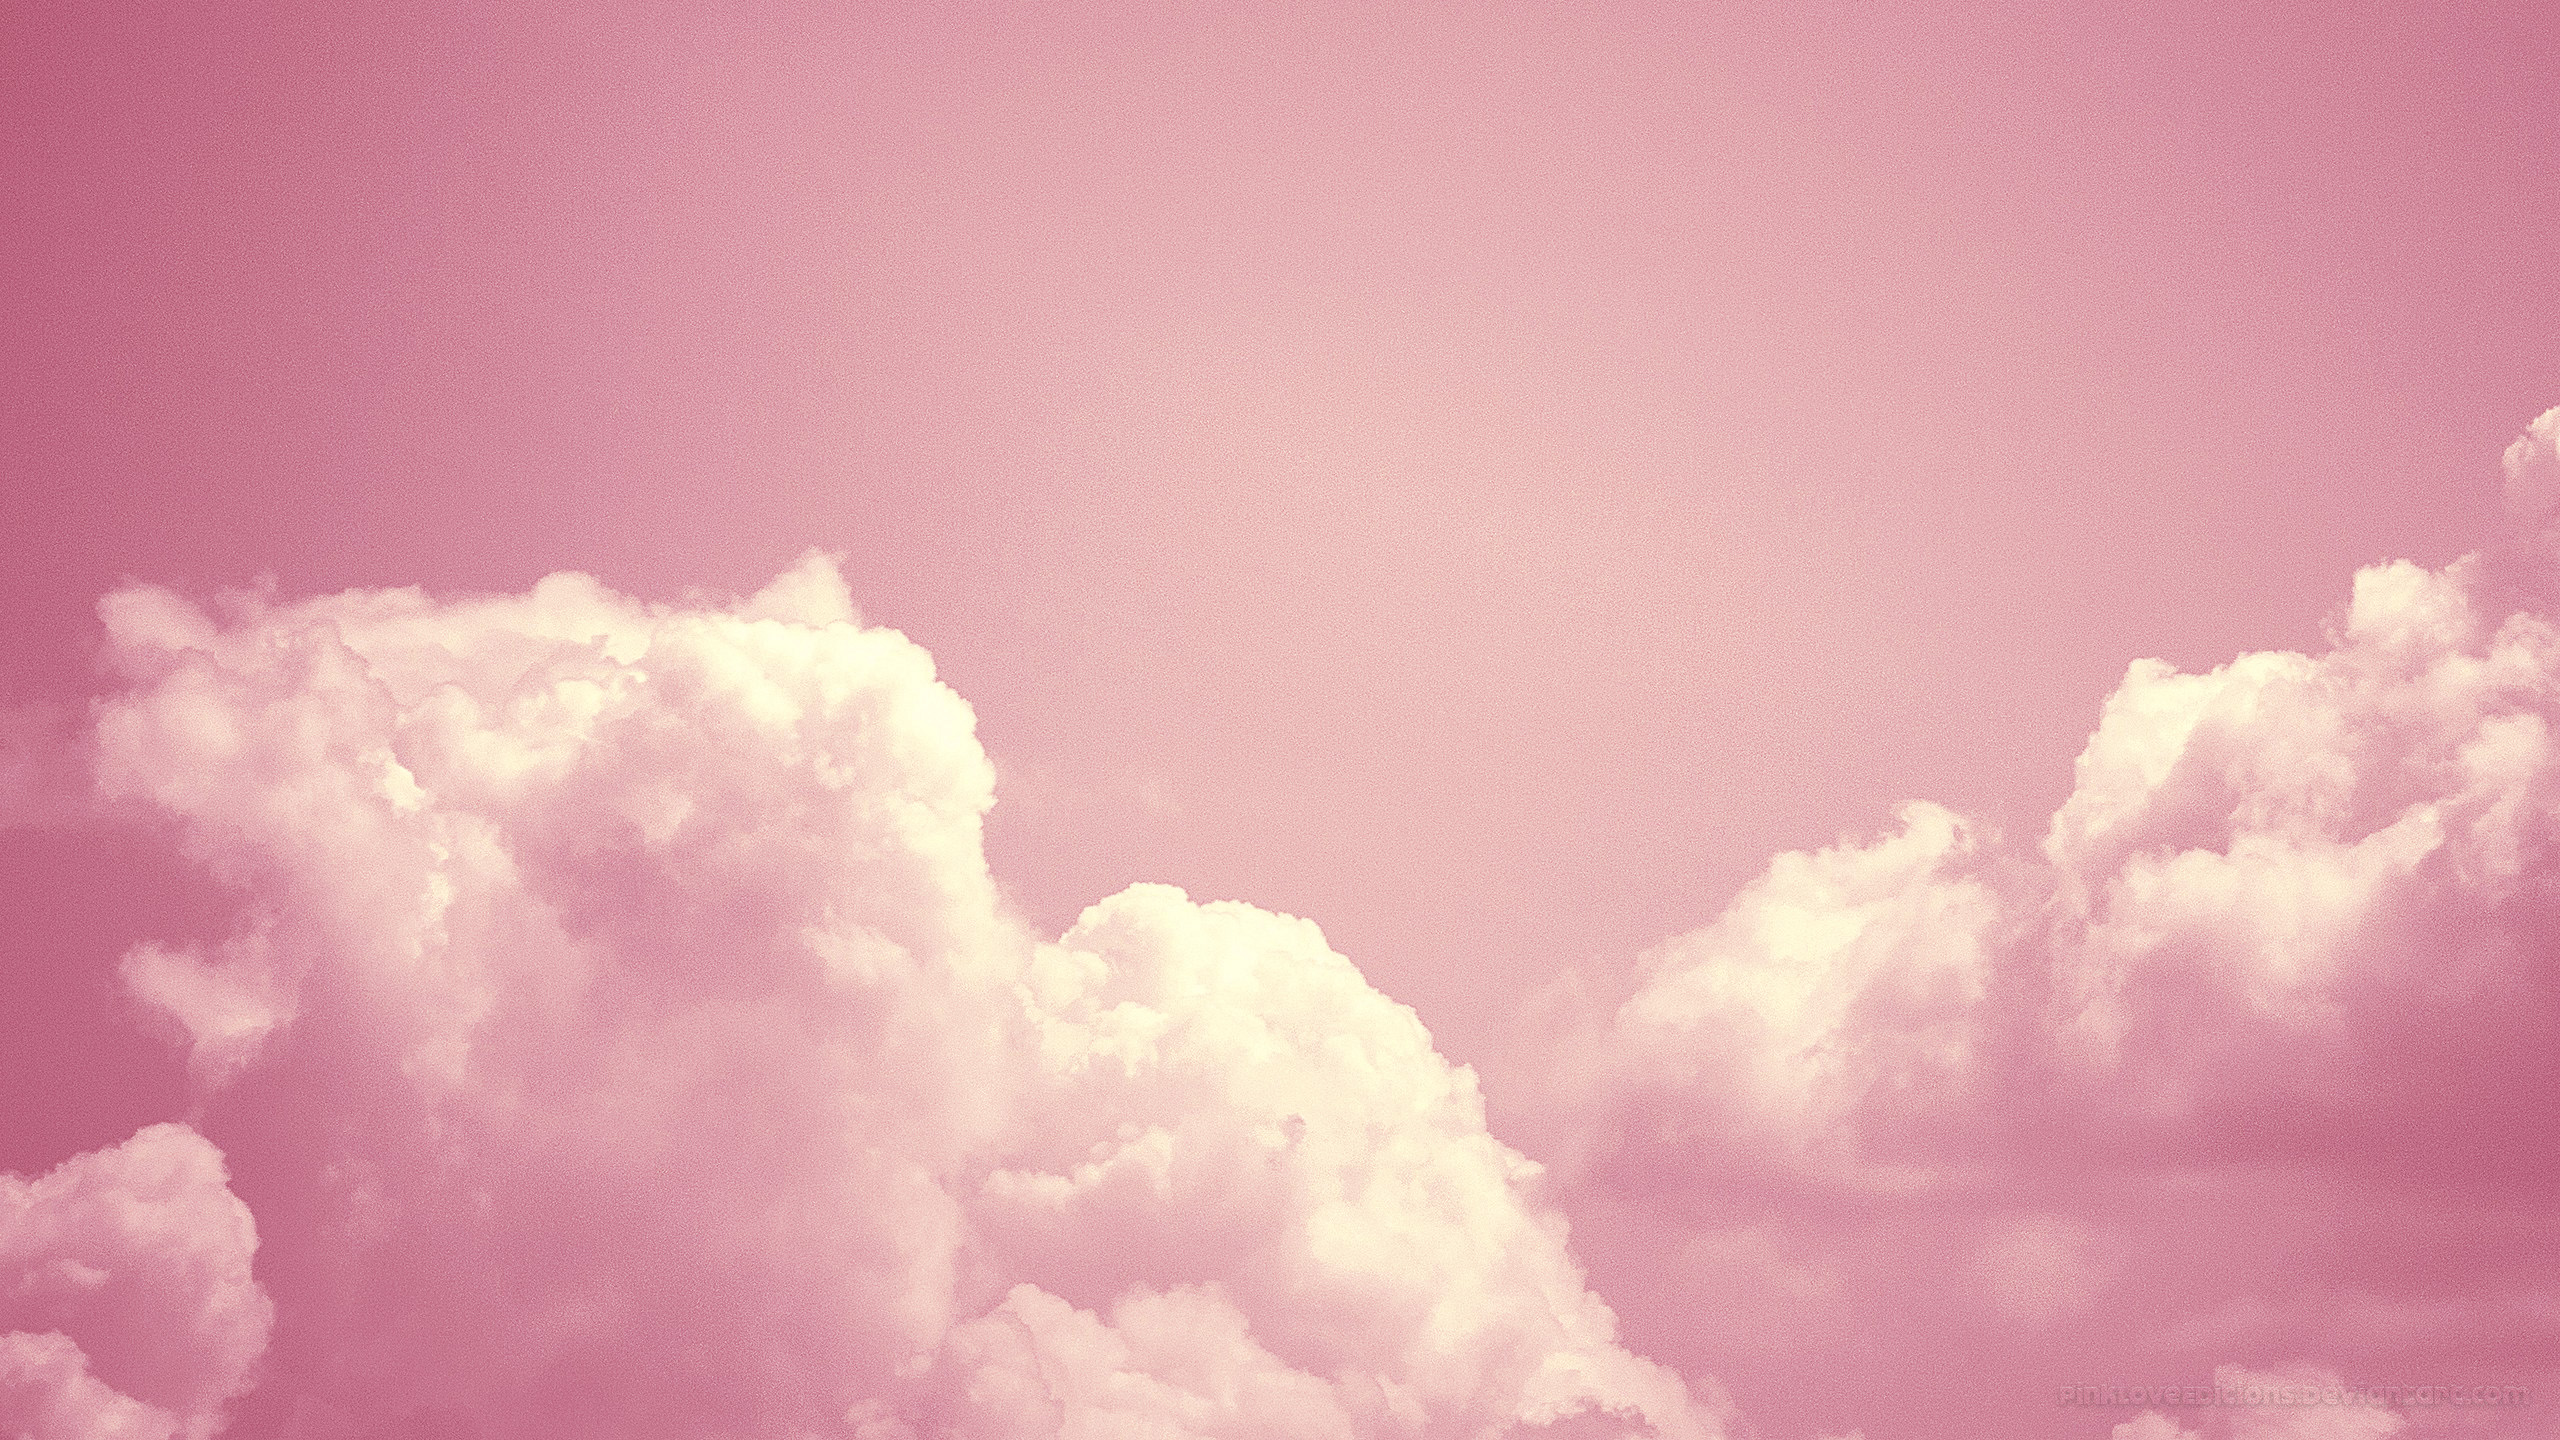 Pink Wallpaper Tumblr wallpaper - 1370487